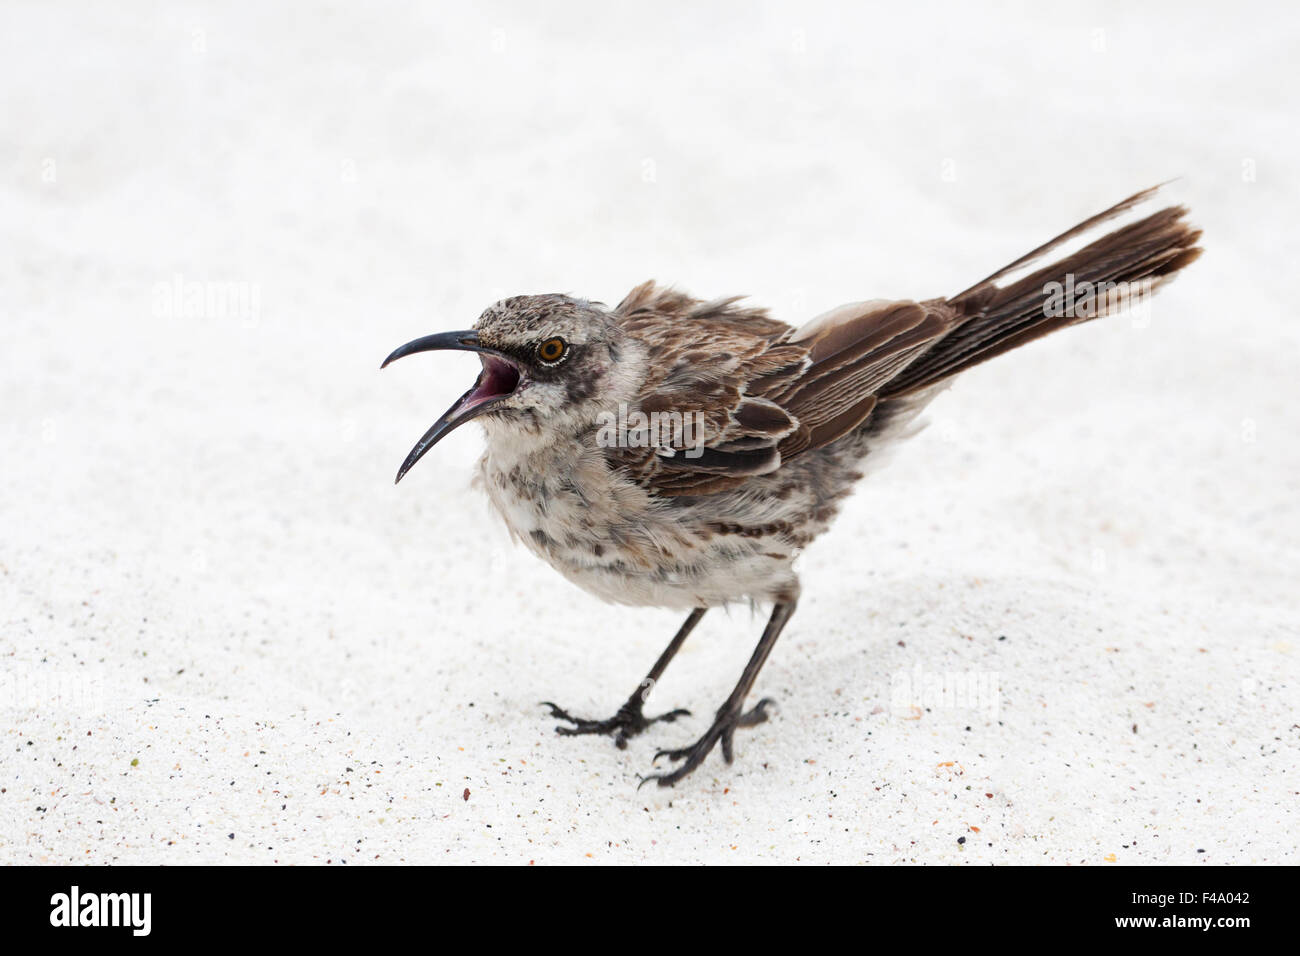 Espanola (Hood) Mockingbird (Mimus macdonaldi) Stock Photo